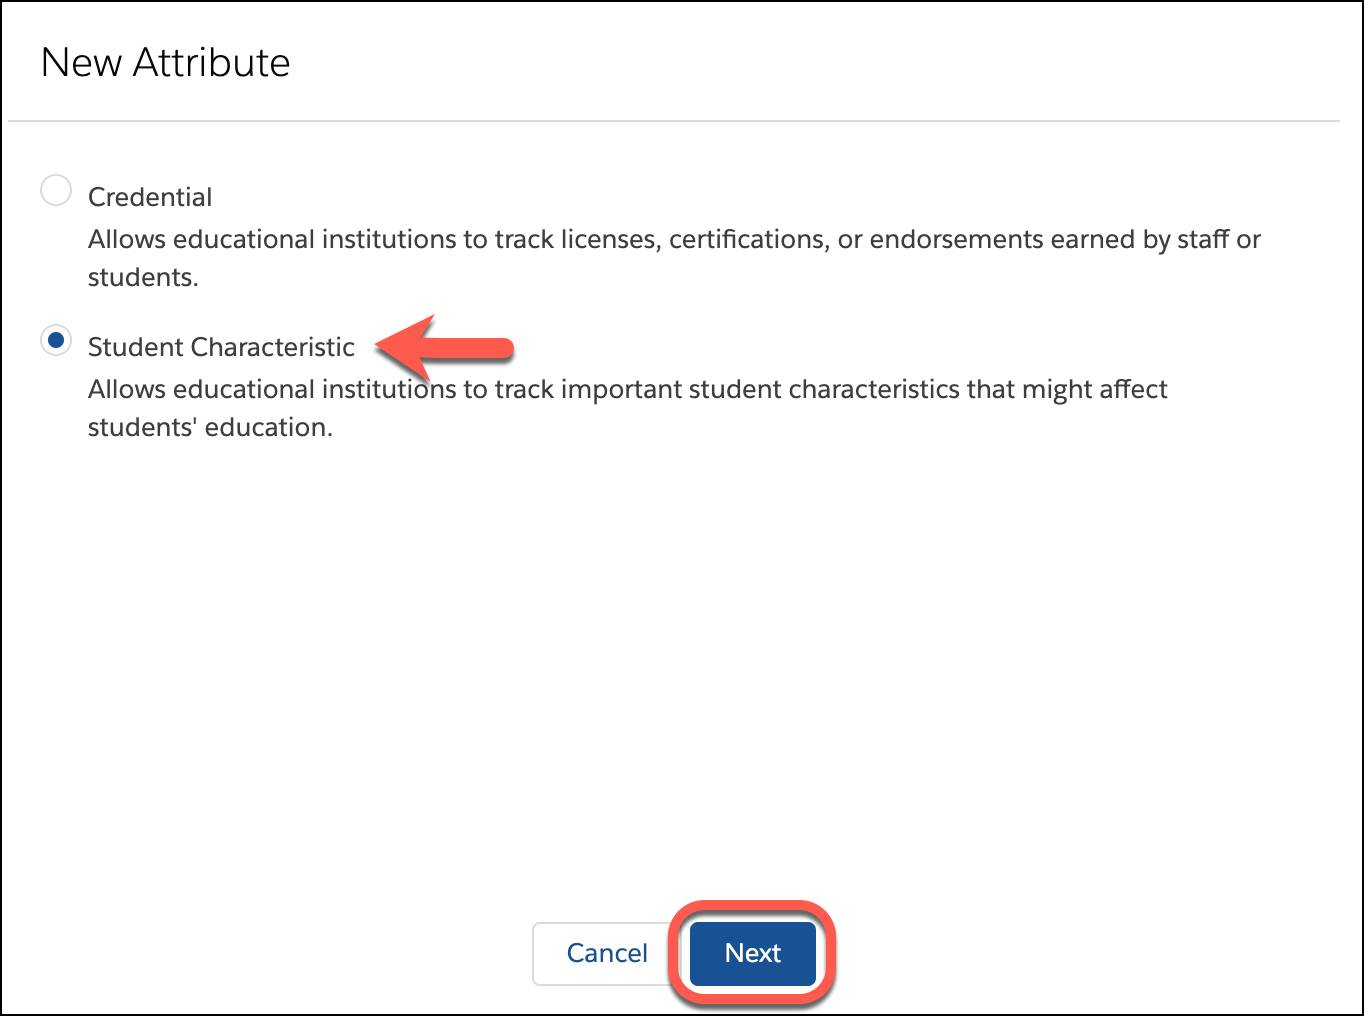 Student Characteristic selected as New Attribute type and Next button